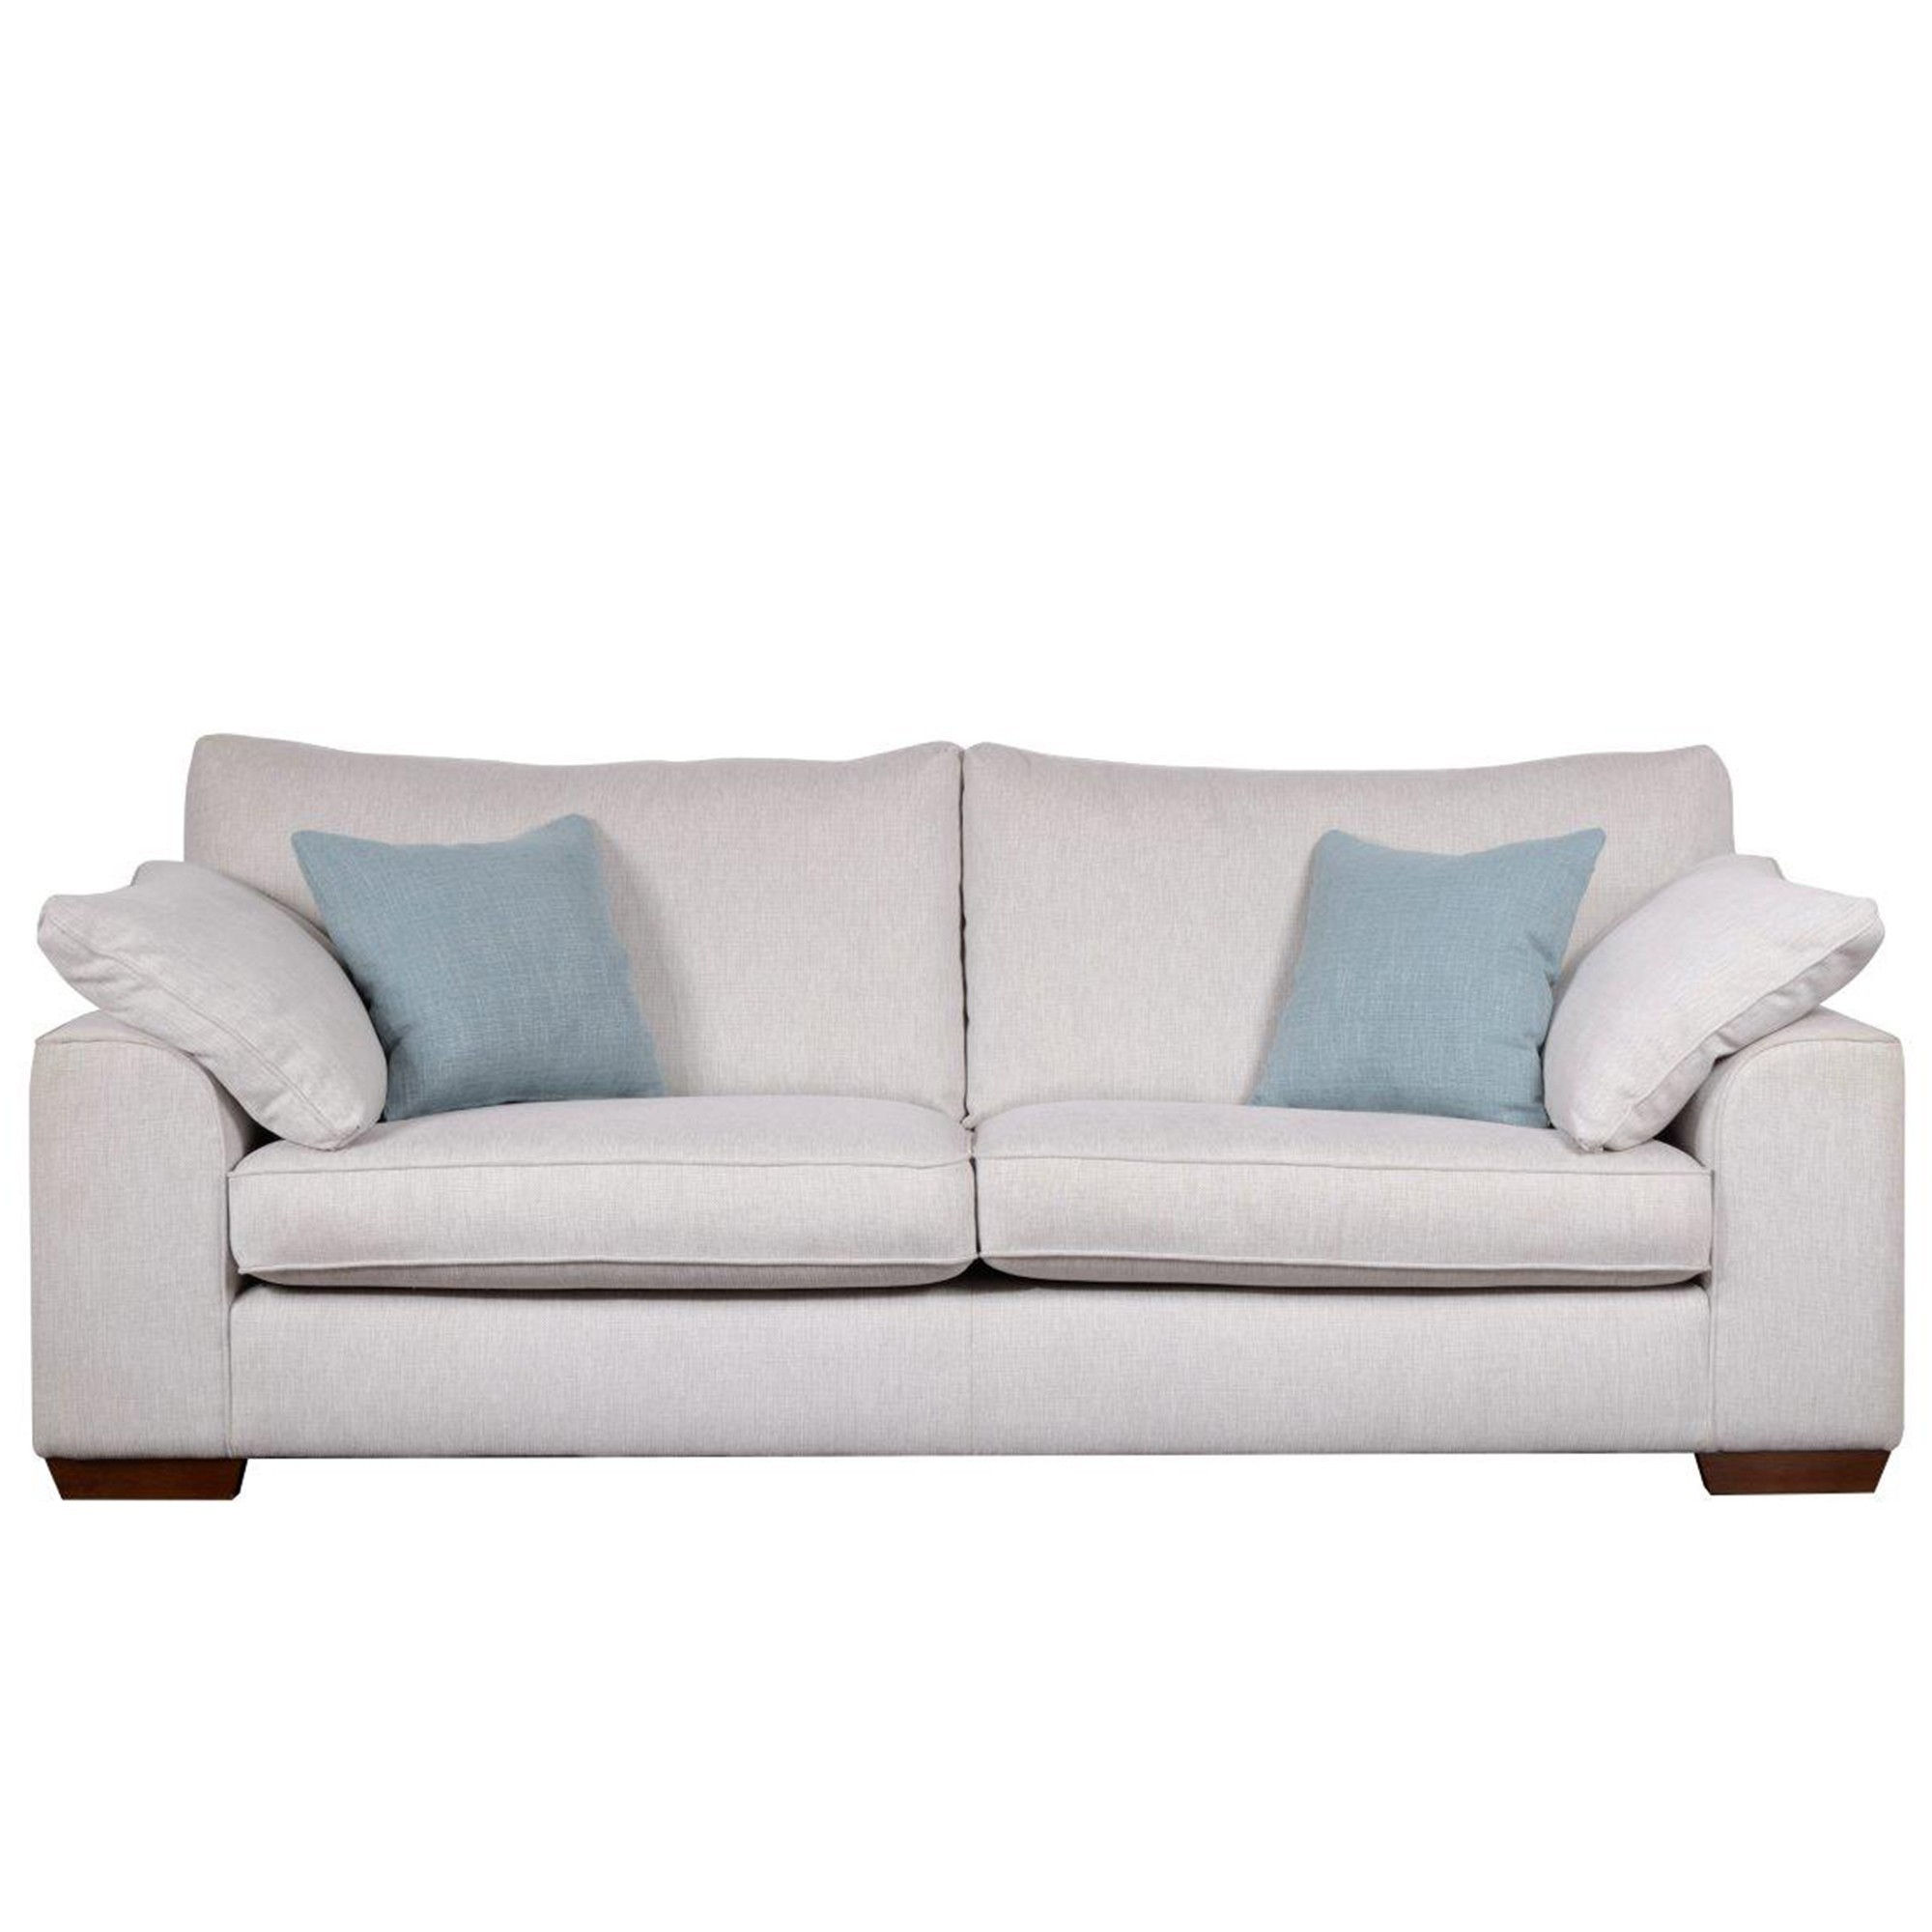 Michigan Extra Large Sofa All Sofas